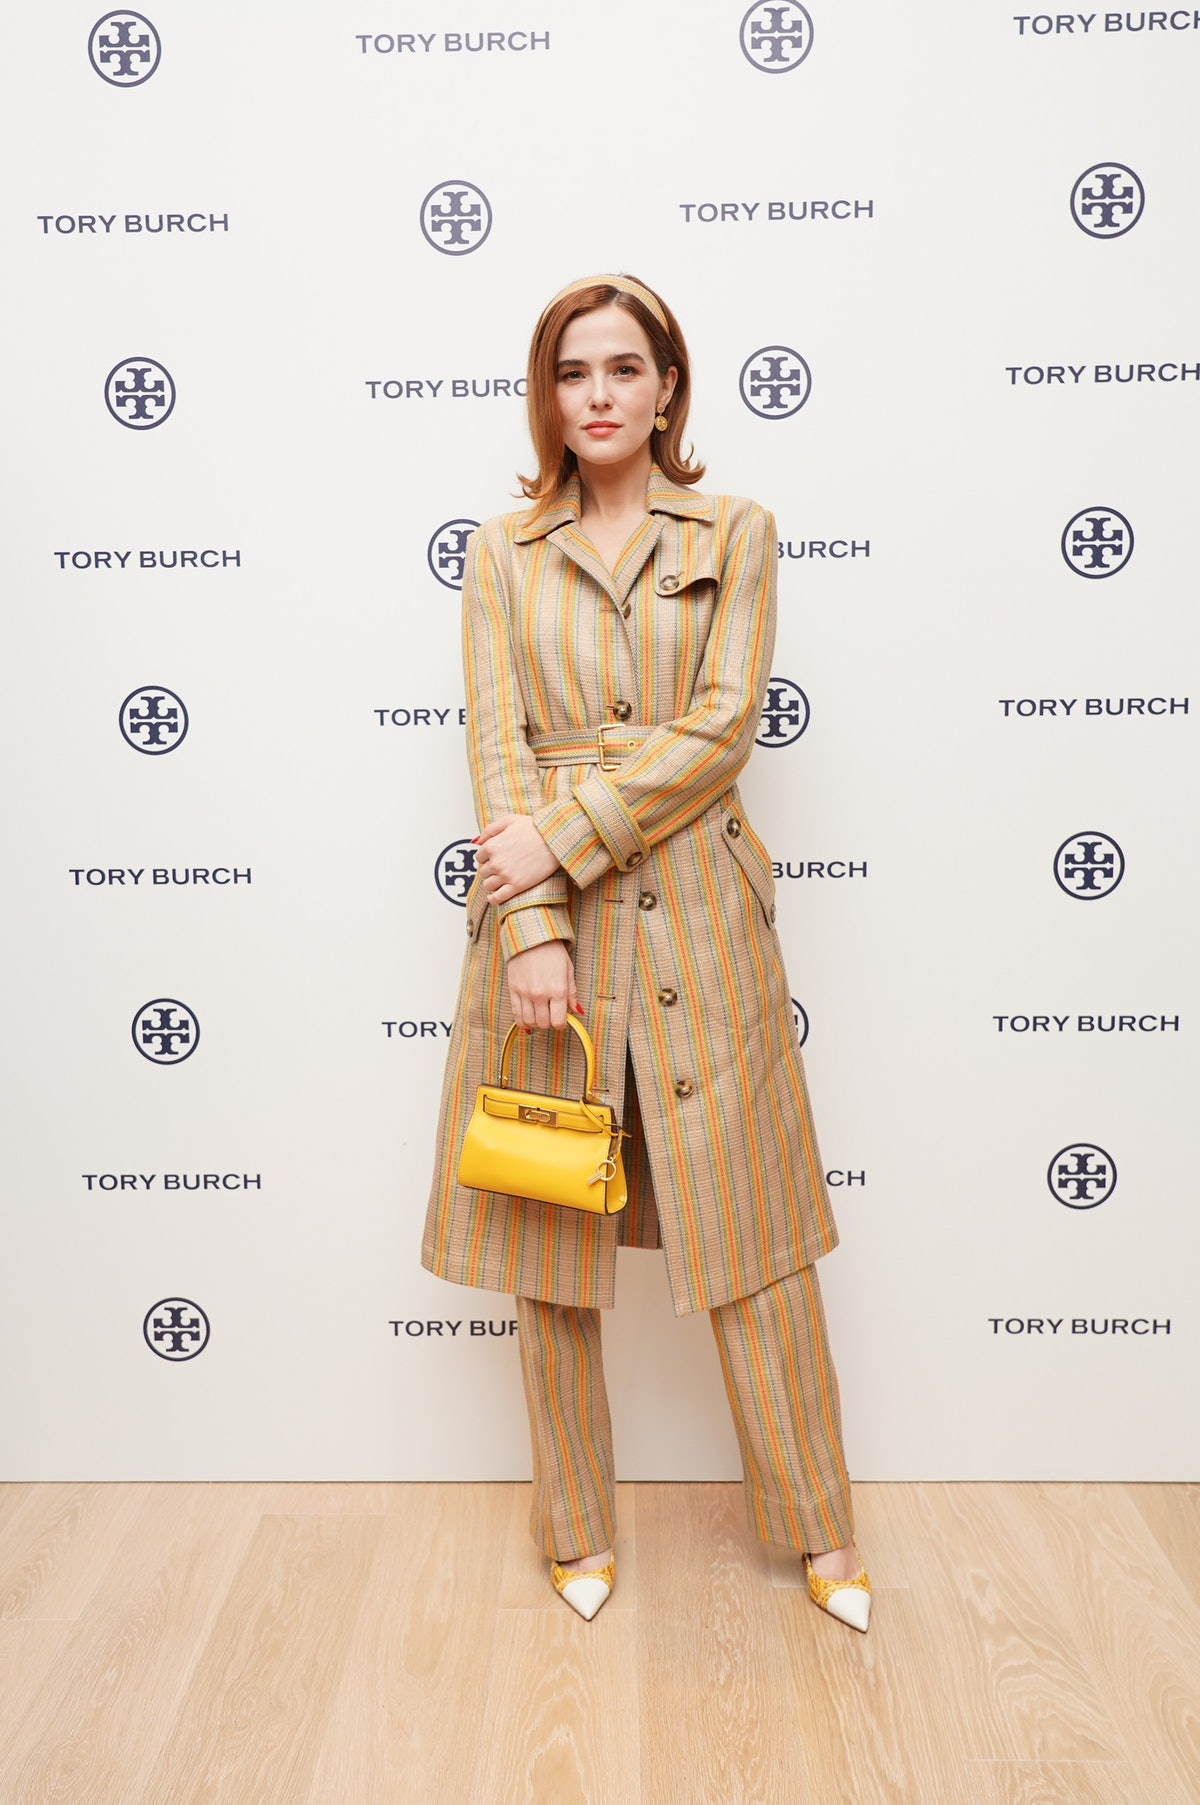 Tory Burch Ginza Boutique Opening